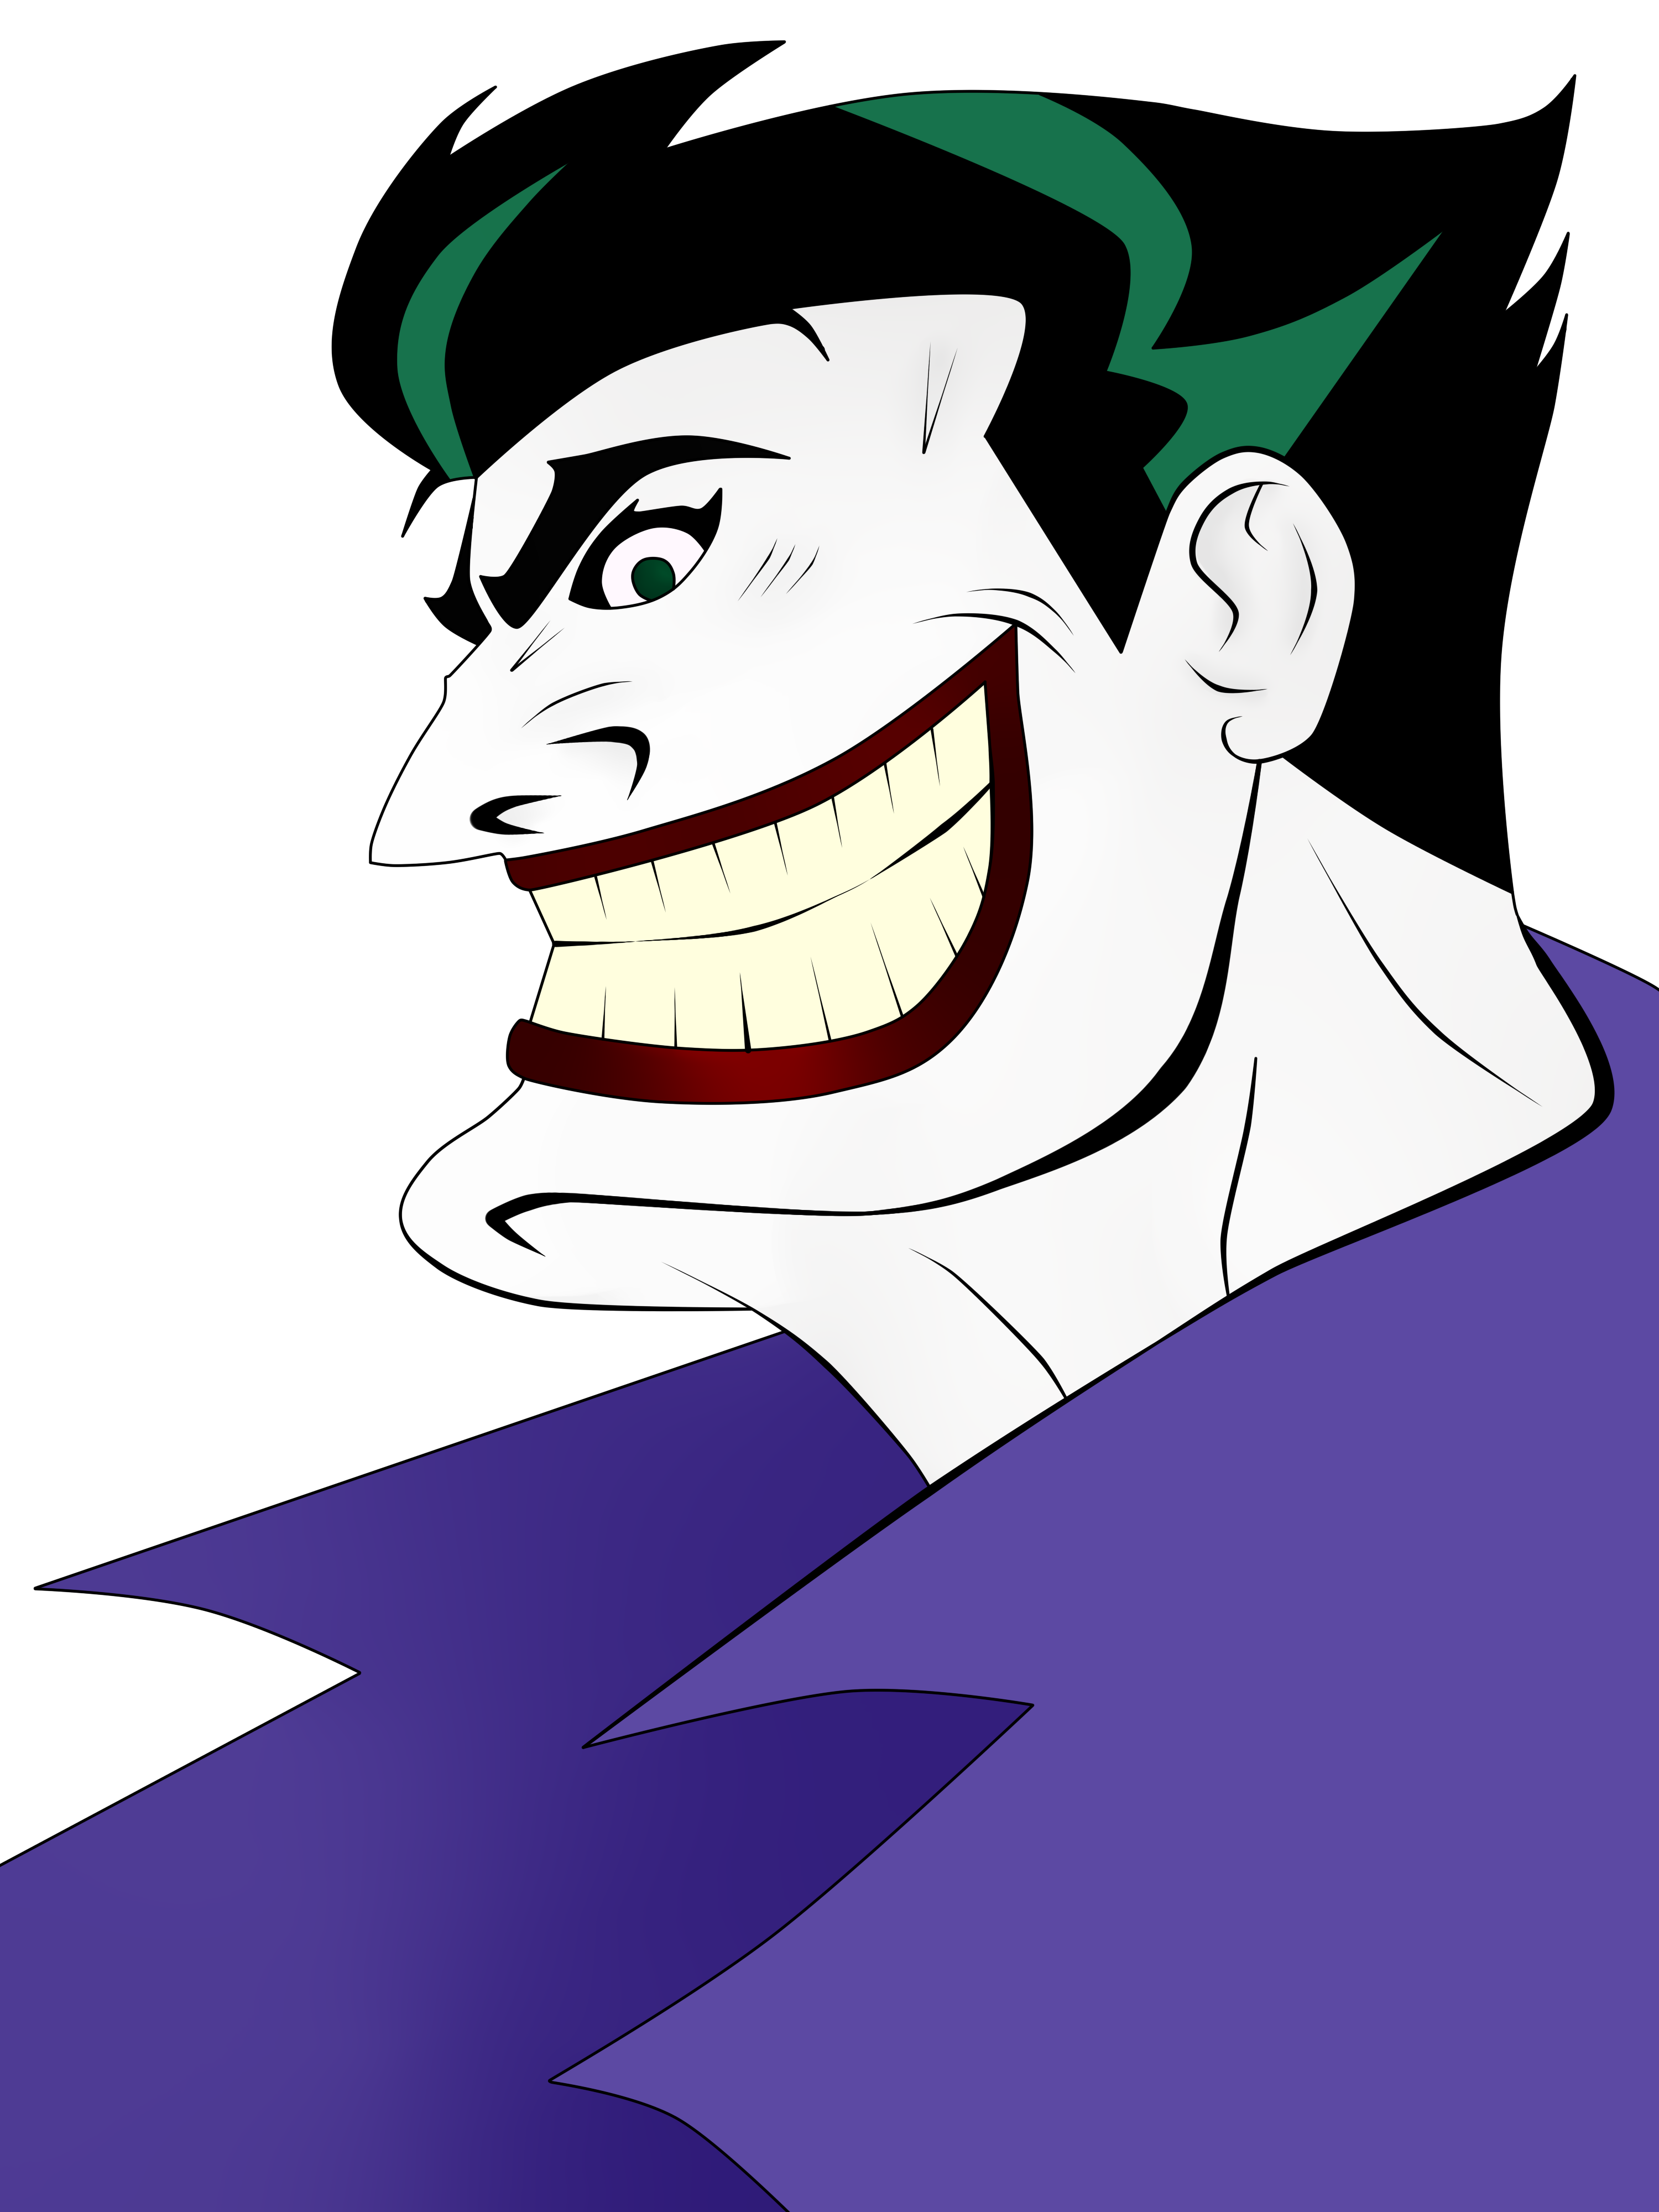 Joker Animated Series Drawing Images & Pictures - Becuo Joker Smile Png